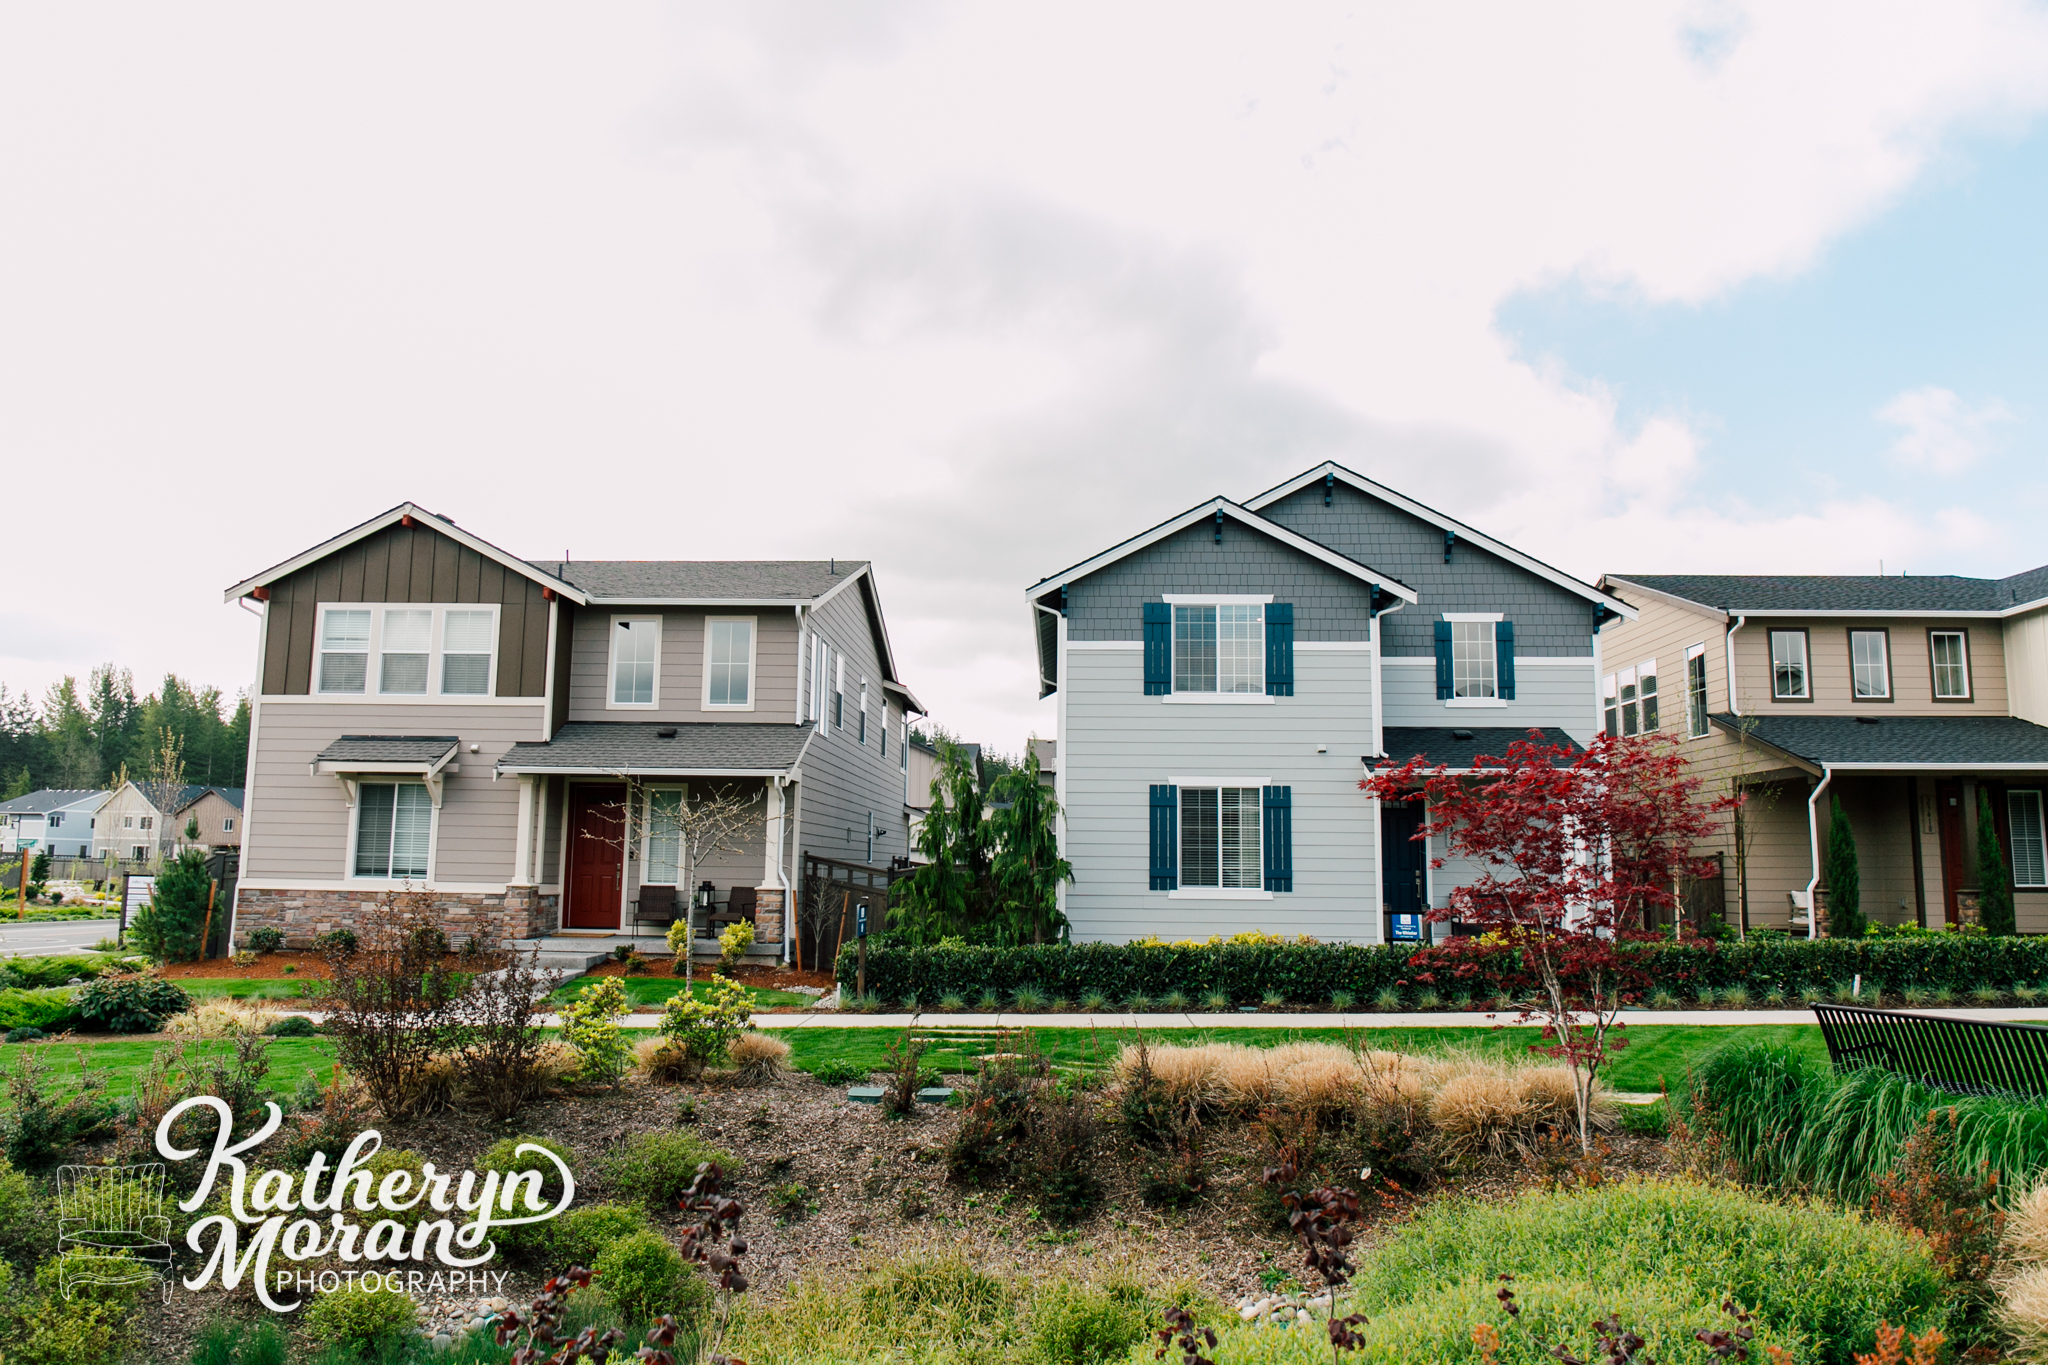 Seattle Business Photographer Ten Trails Neighborhood Katheryn Moran